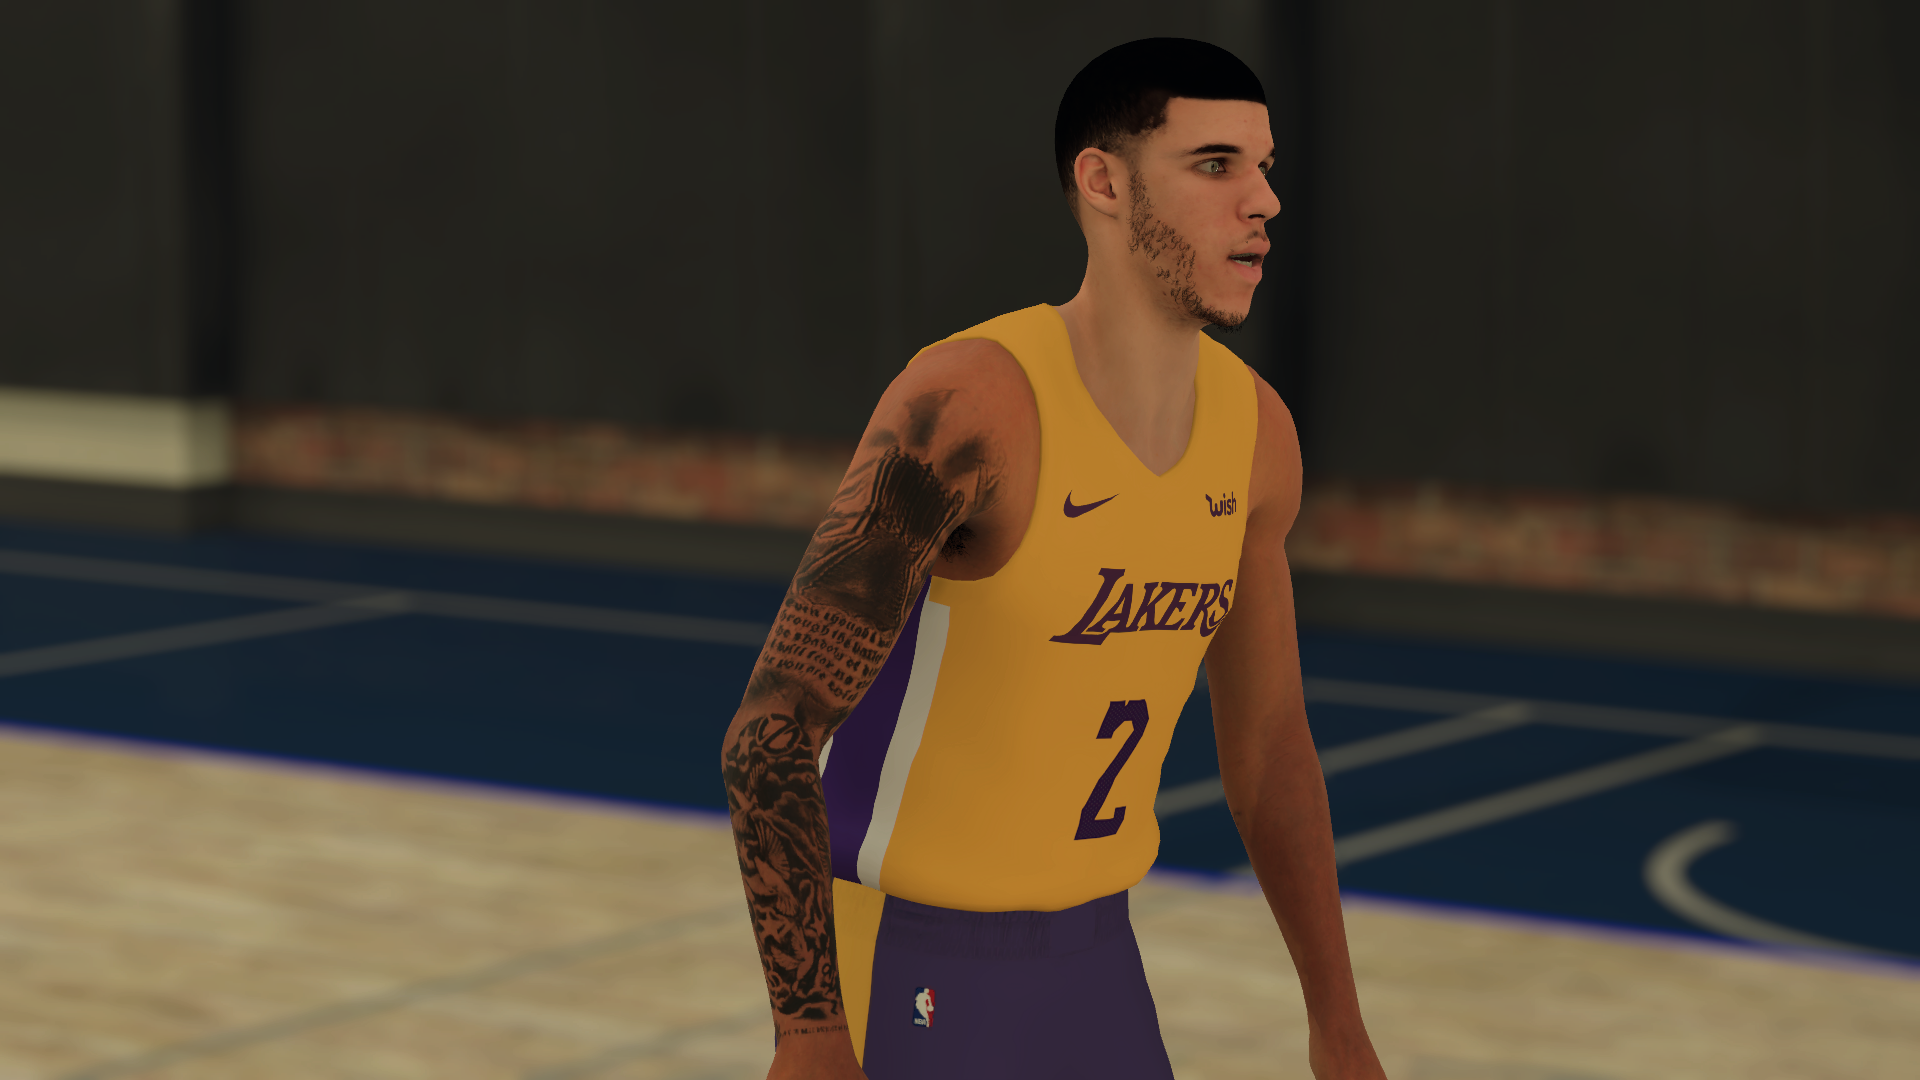 Lonzo Ball Tattoos